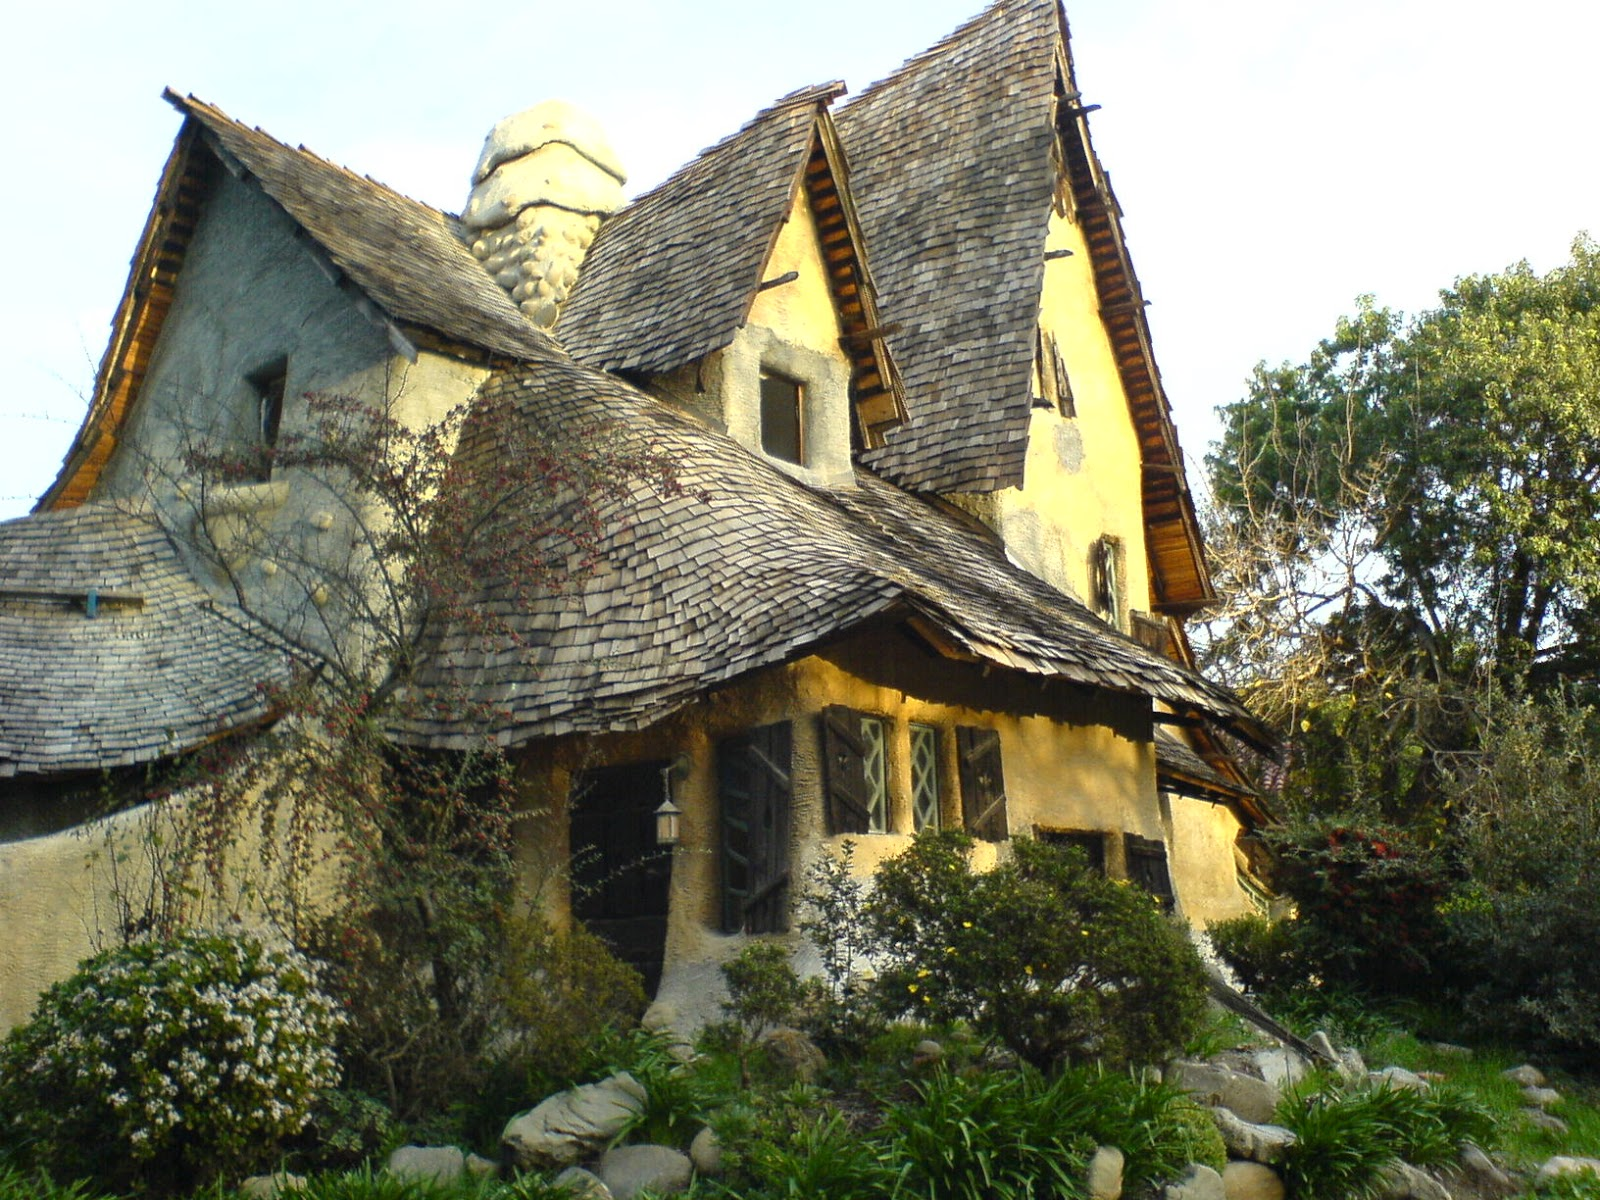 Inkspired musings fanciful homes and their paper dolls - Storybook houses dreamy home ...